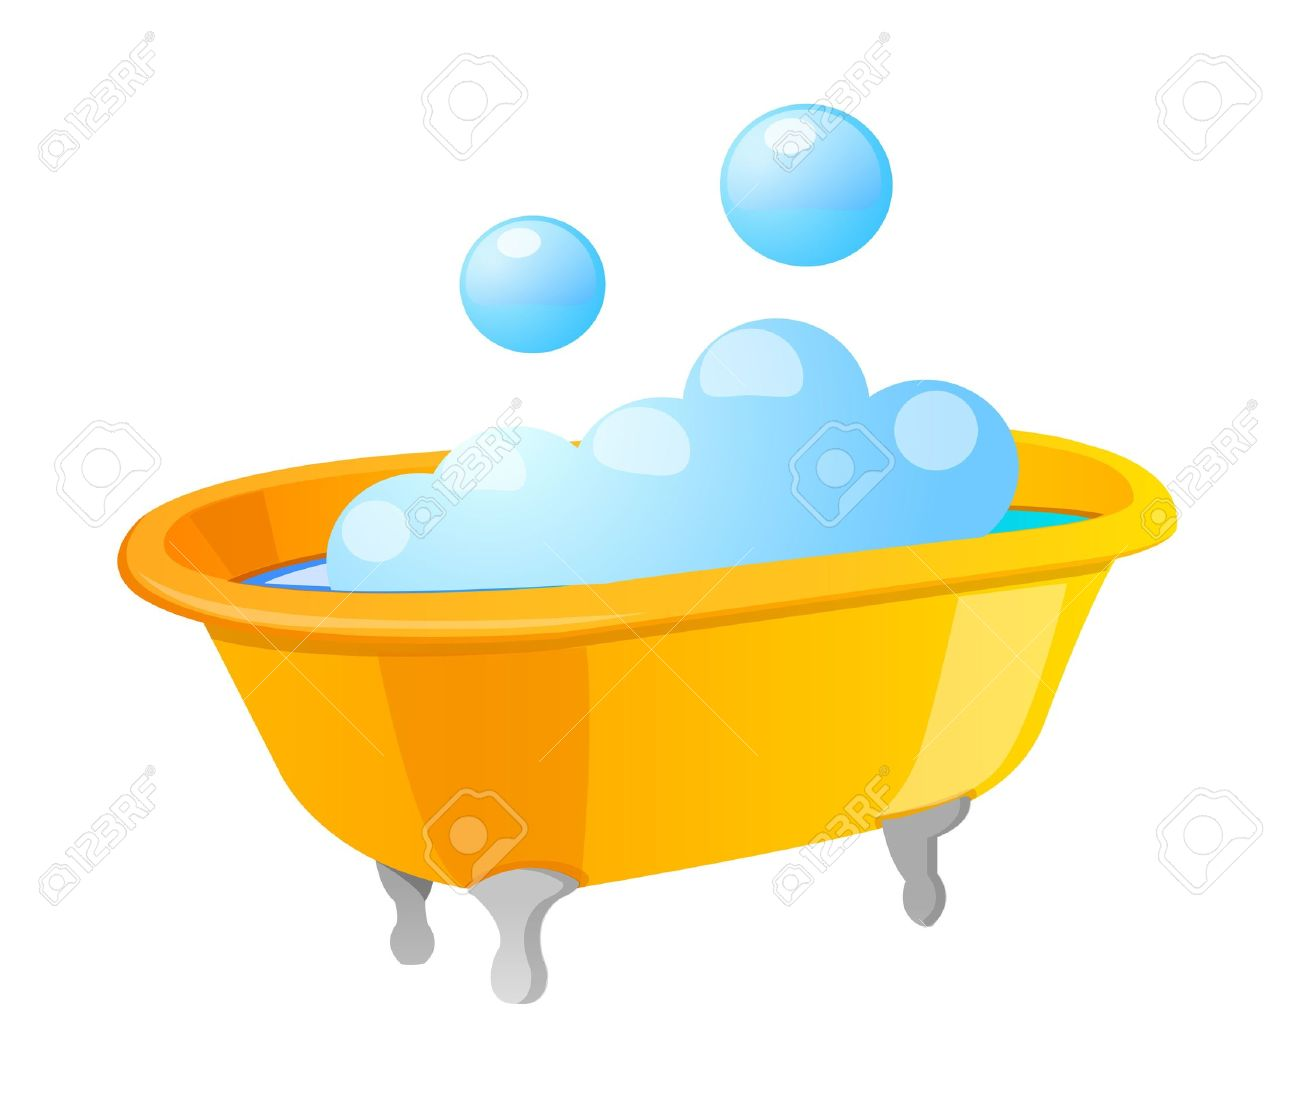 Bathtub with bubbles clipart.